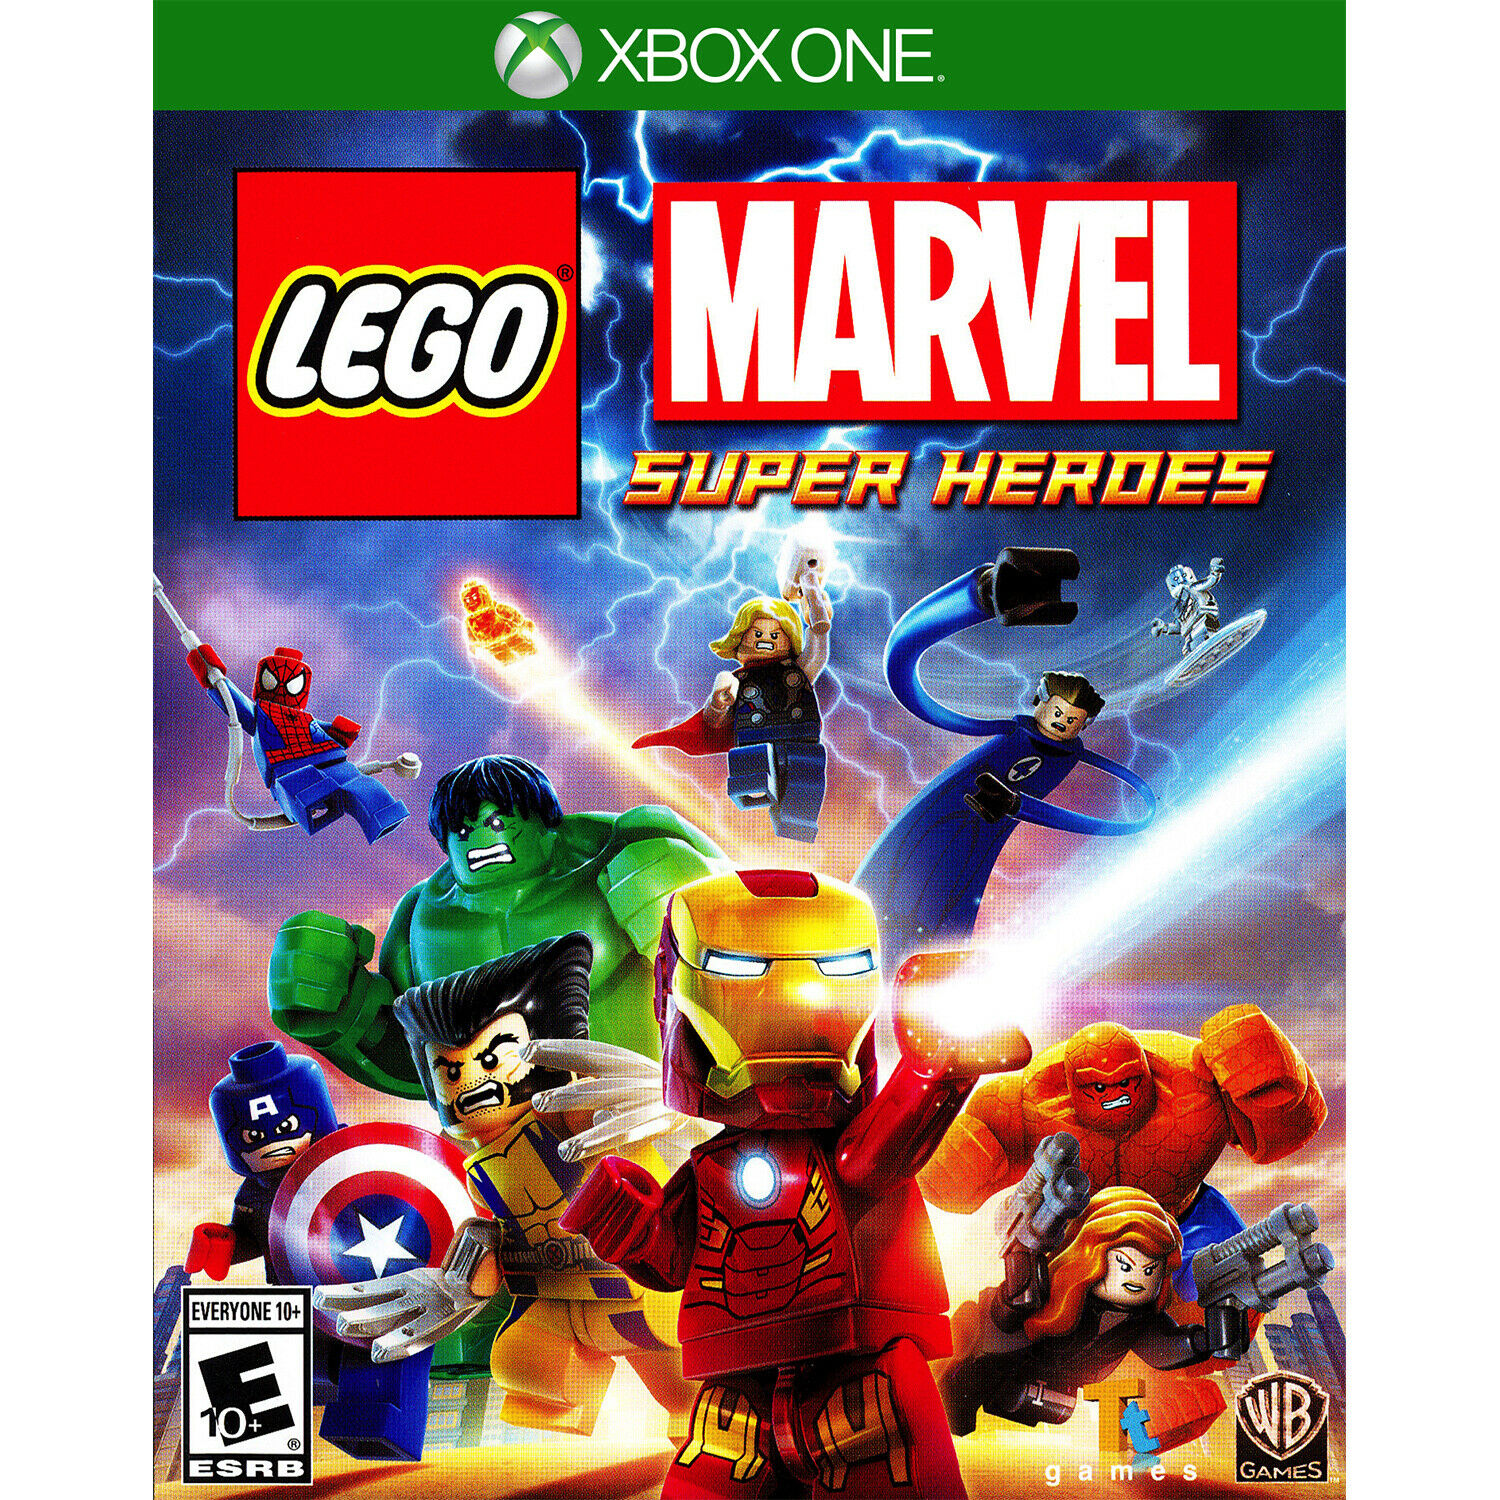 Best Xbox One Games for Kids: LEGO Marvel Super Heroes